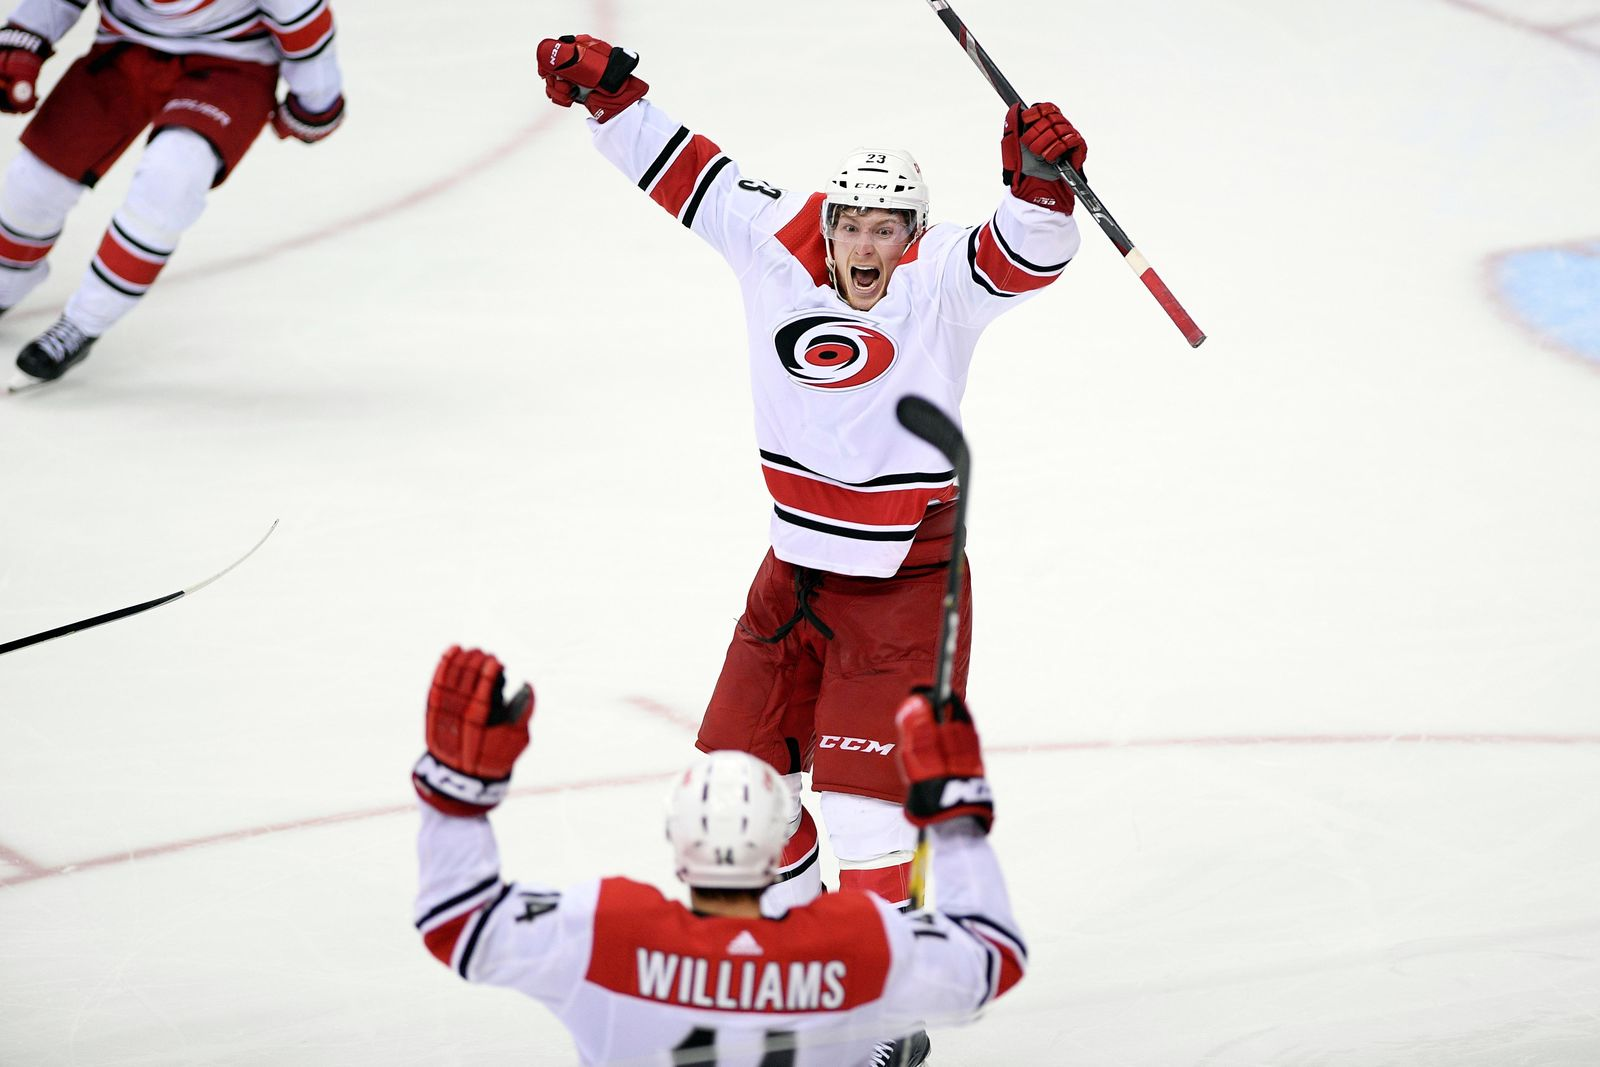 Carolina Hurricanes left wing Brock McGinn (23) celebrates his game-winning goal with Justin Williams (14) in double overtime of Game 7 of an NHL hockey first-round playoff series against the Washington Capitals, Wednesday, April 24, 2019, in Washington. The Hurricanes won 4-3 in double overtime. (AP Photo/Nick Wass)